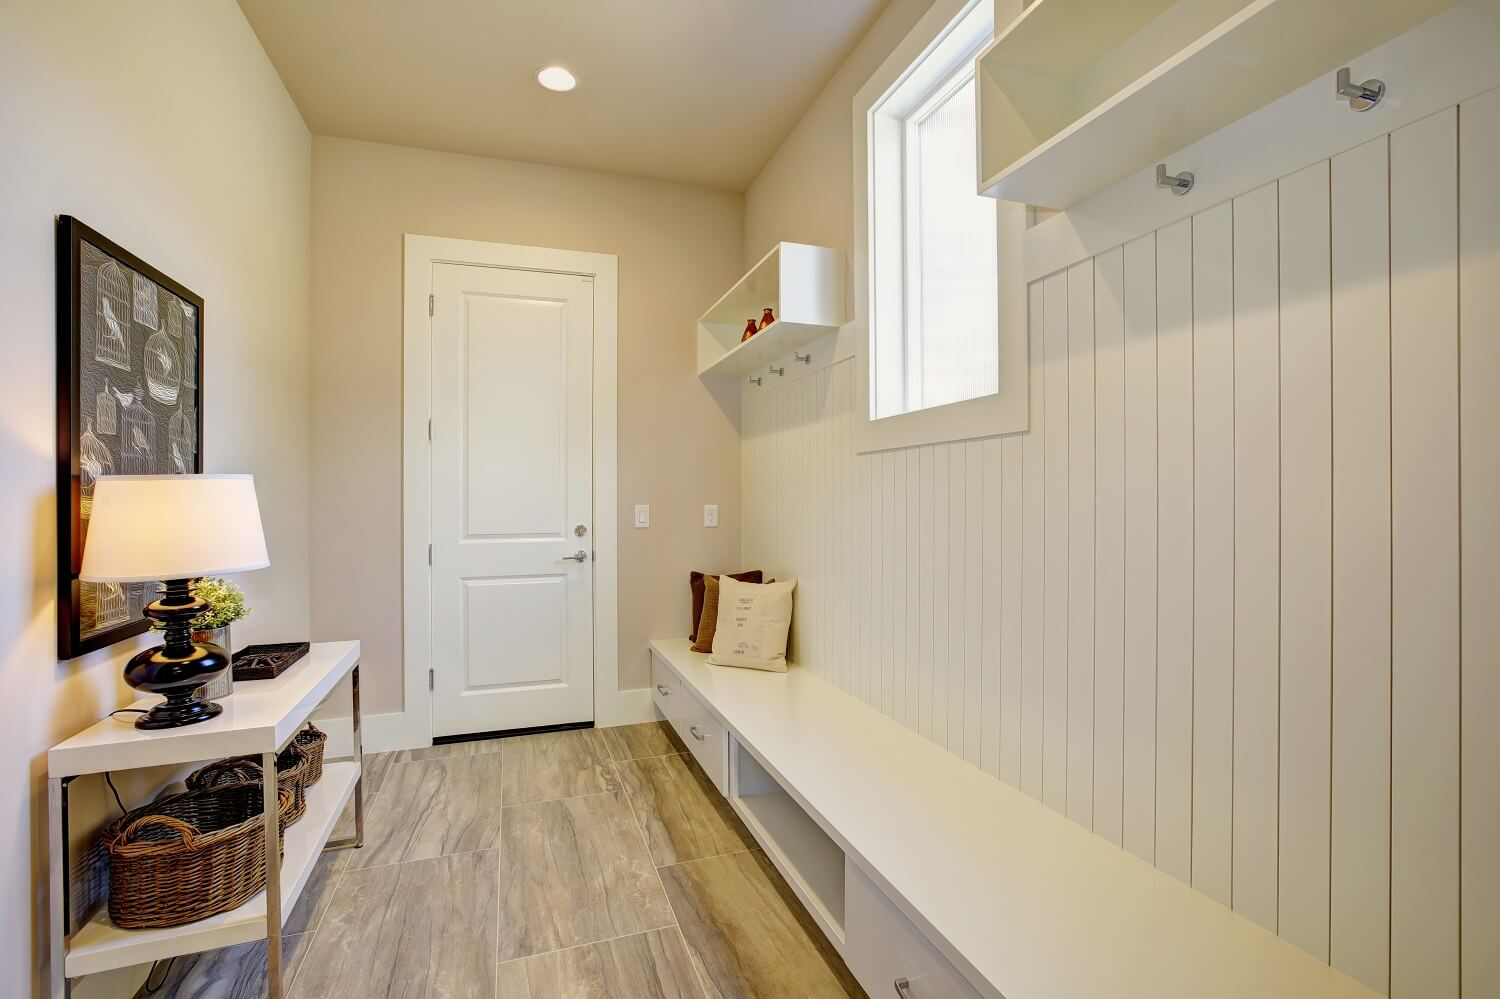 Pretty entrance foyer with a wall clad in diy board and batten siding lined with an extra long built-in bench with storage drawers facing white console table with three round wicker baskets